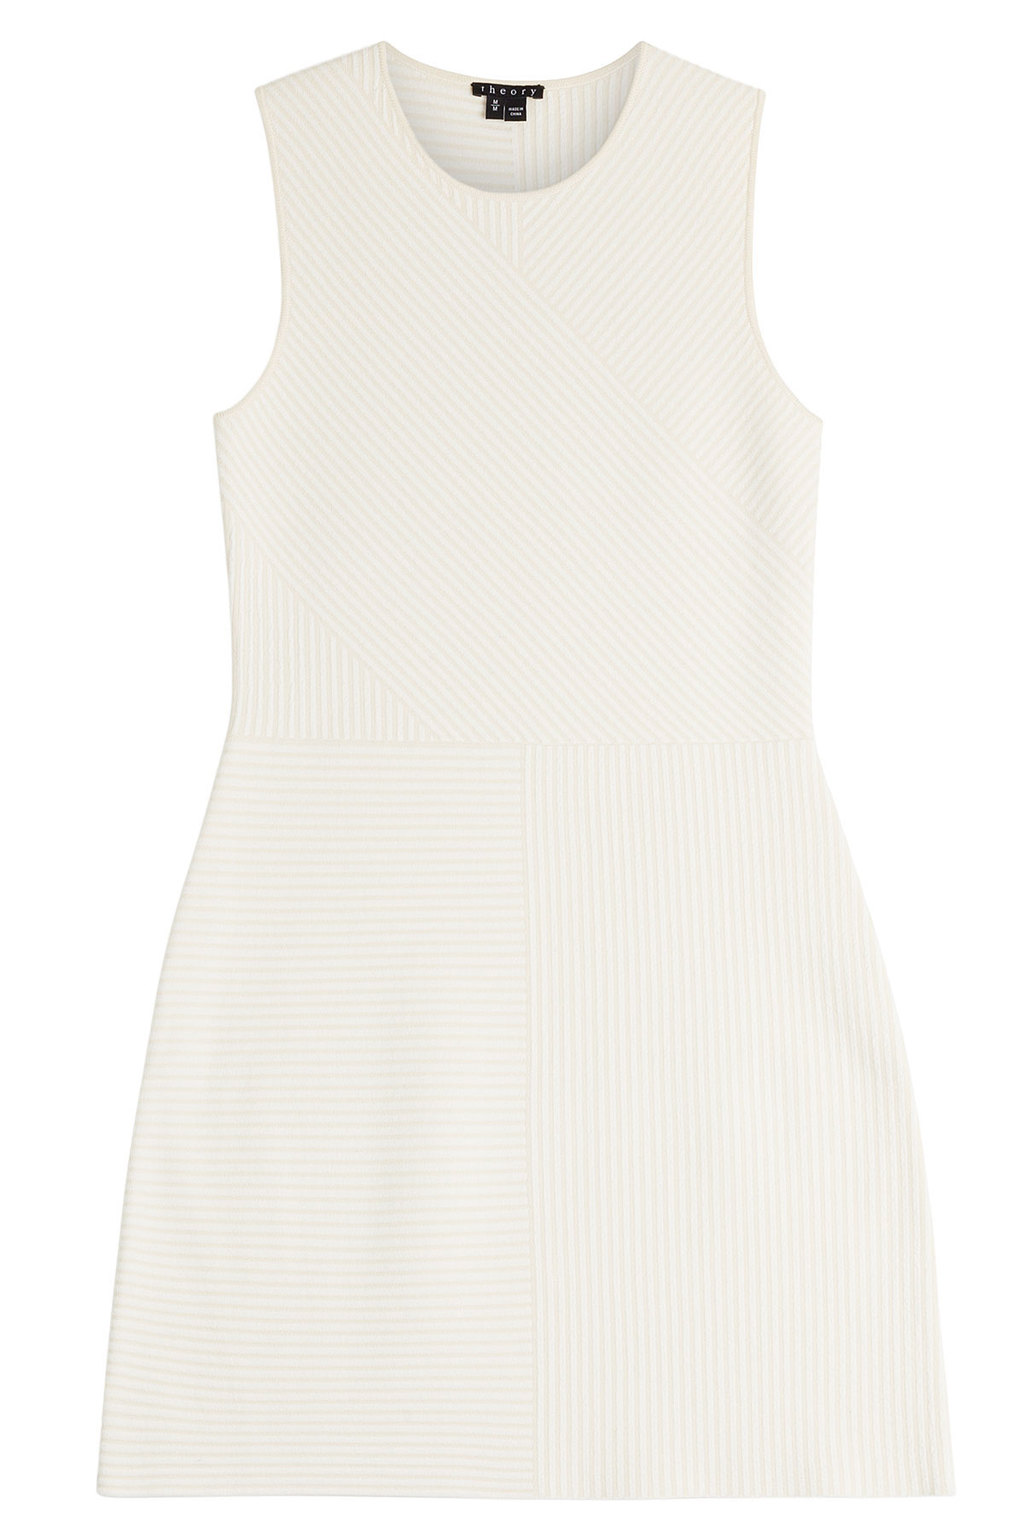 Jersey Dress White - style: shift; fit: tailored/fitted; pattern: plain; sleeve style: sleeveless; predominant colour: ivory/cream; occasions: evening; length: just above the knee; neckline: crew; sleeve length: sleeveless; pattern type: fabric; texture group: brocade/jacquard; fibres: viscose/rayon - mix; season: a/w 2015